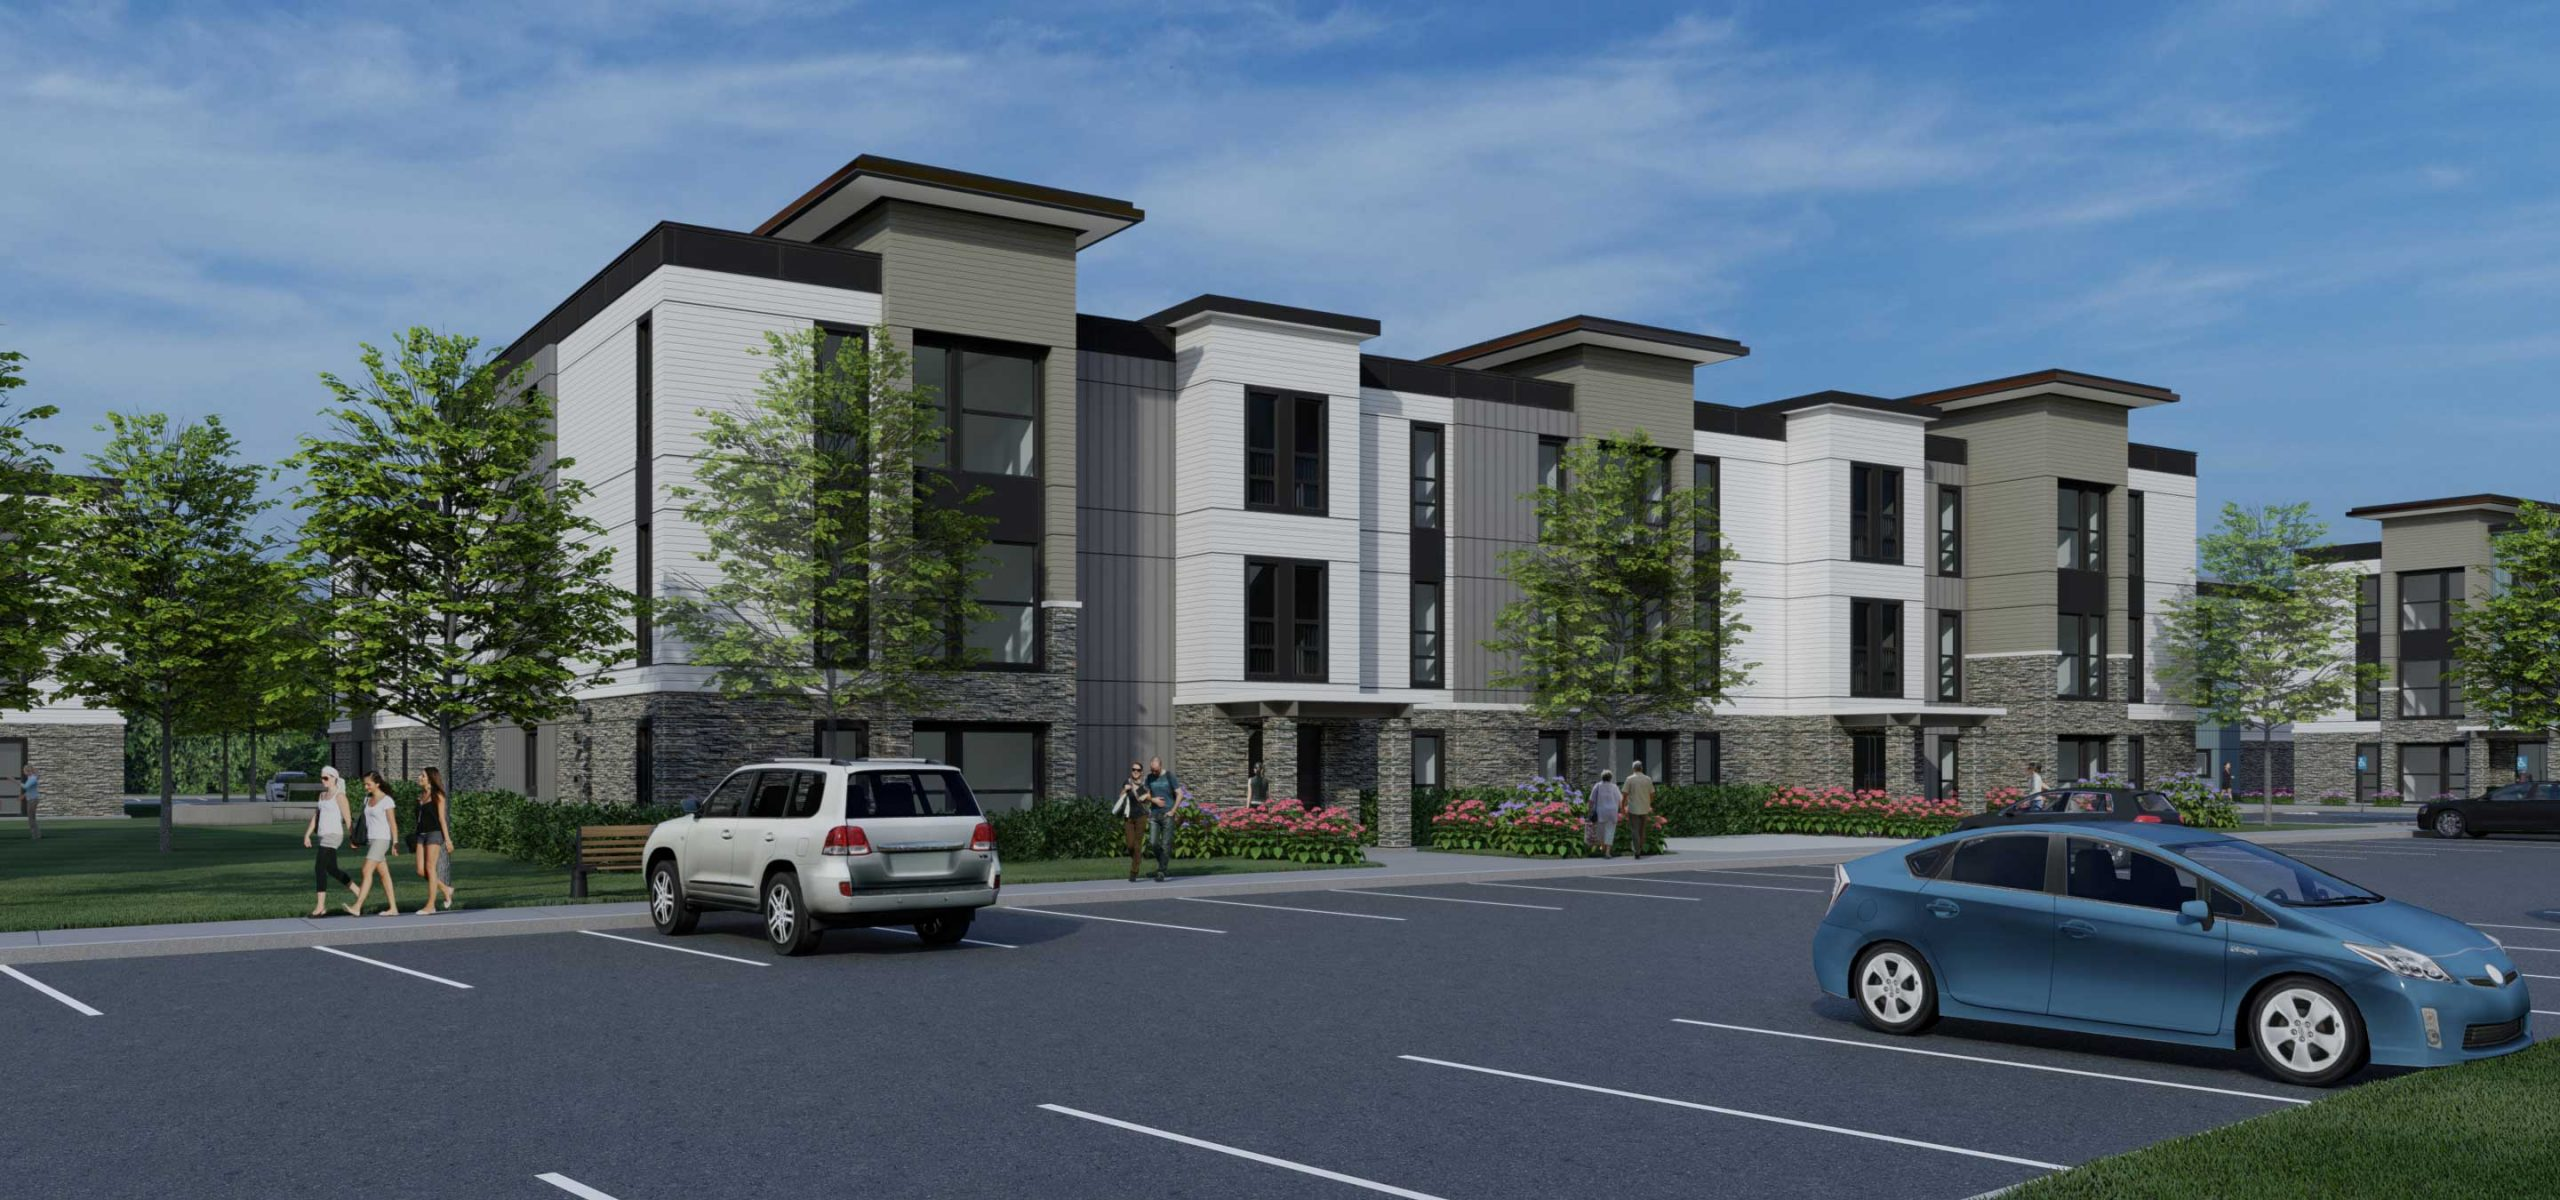 Front view rendering of Lemos Pointe apartment building